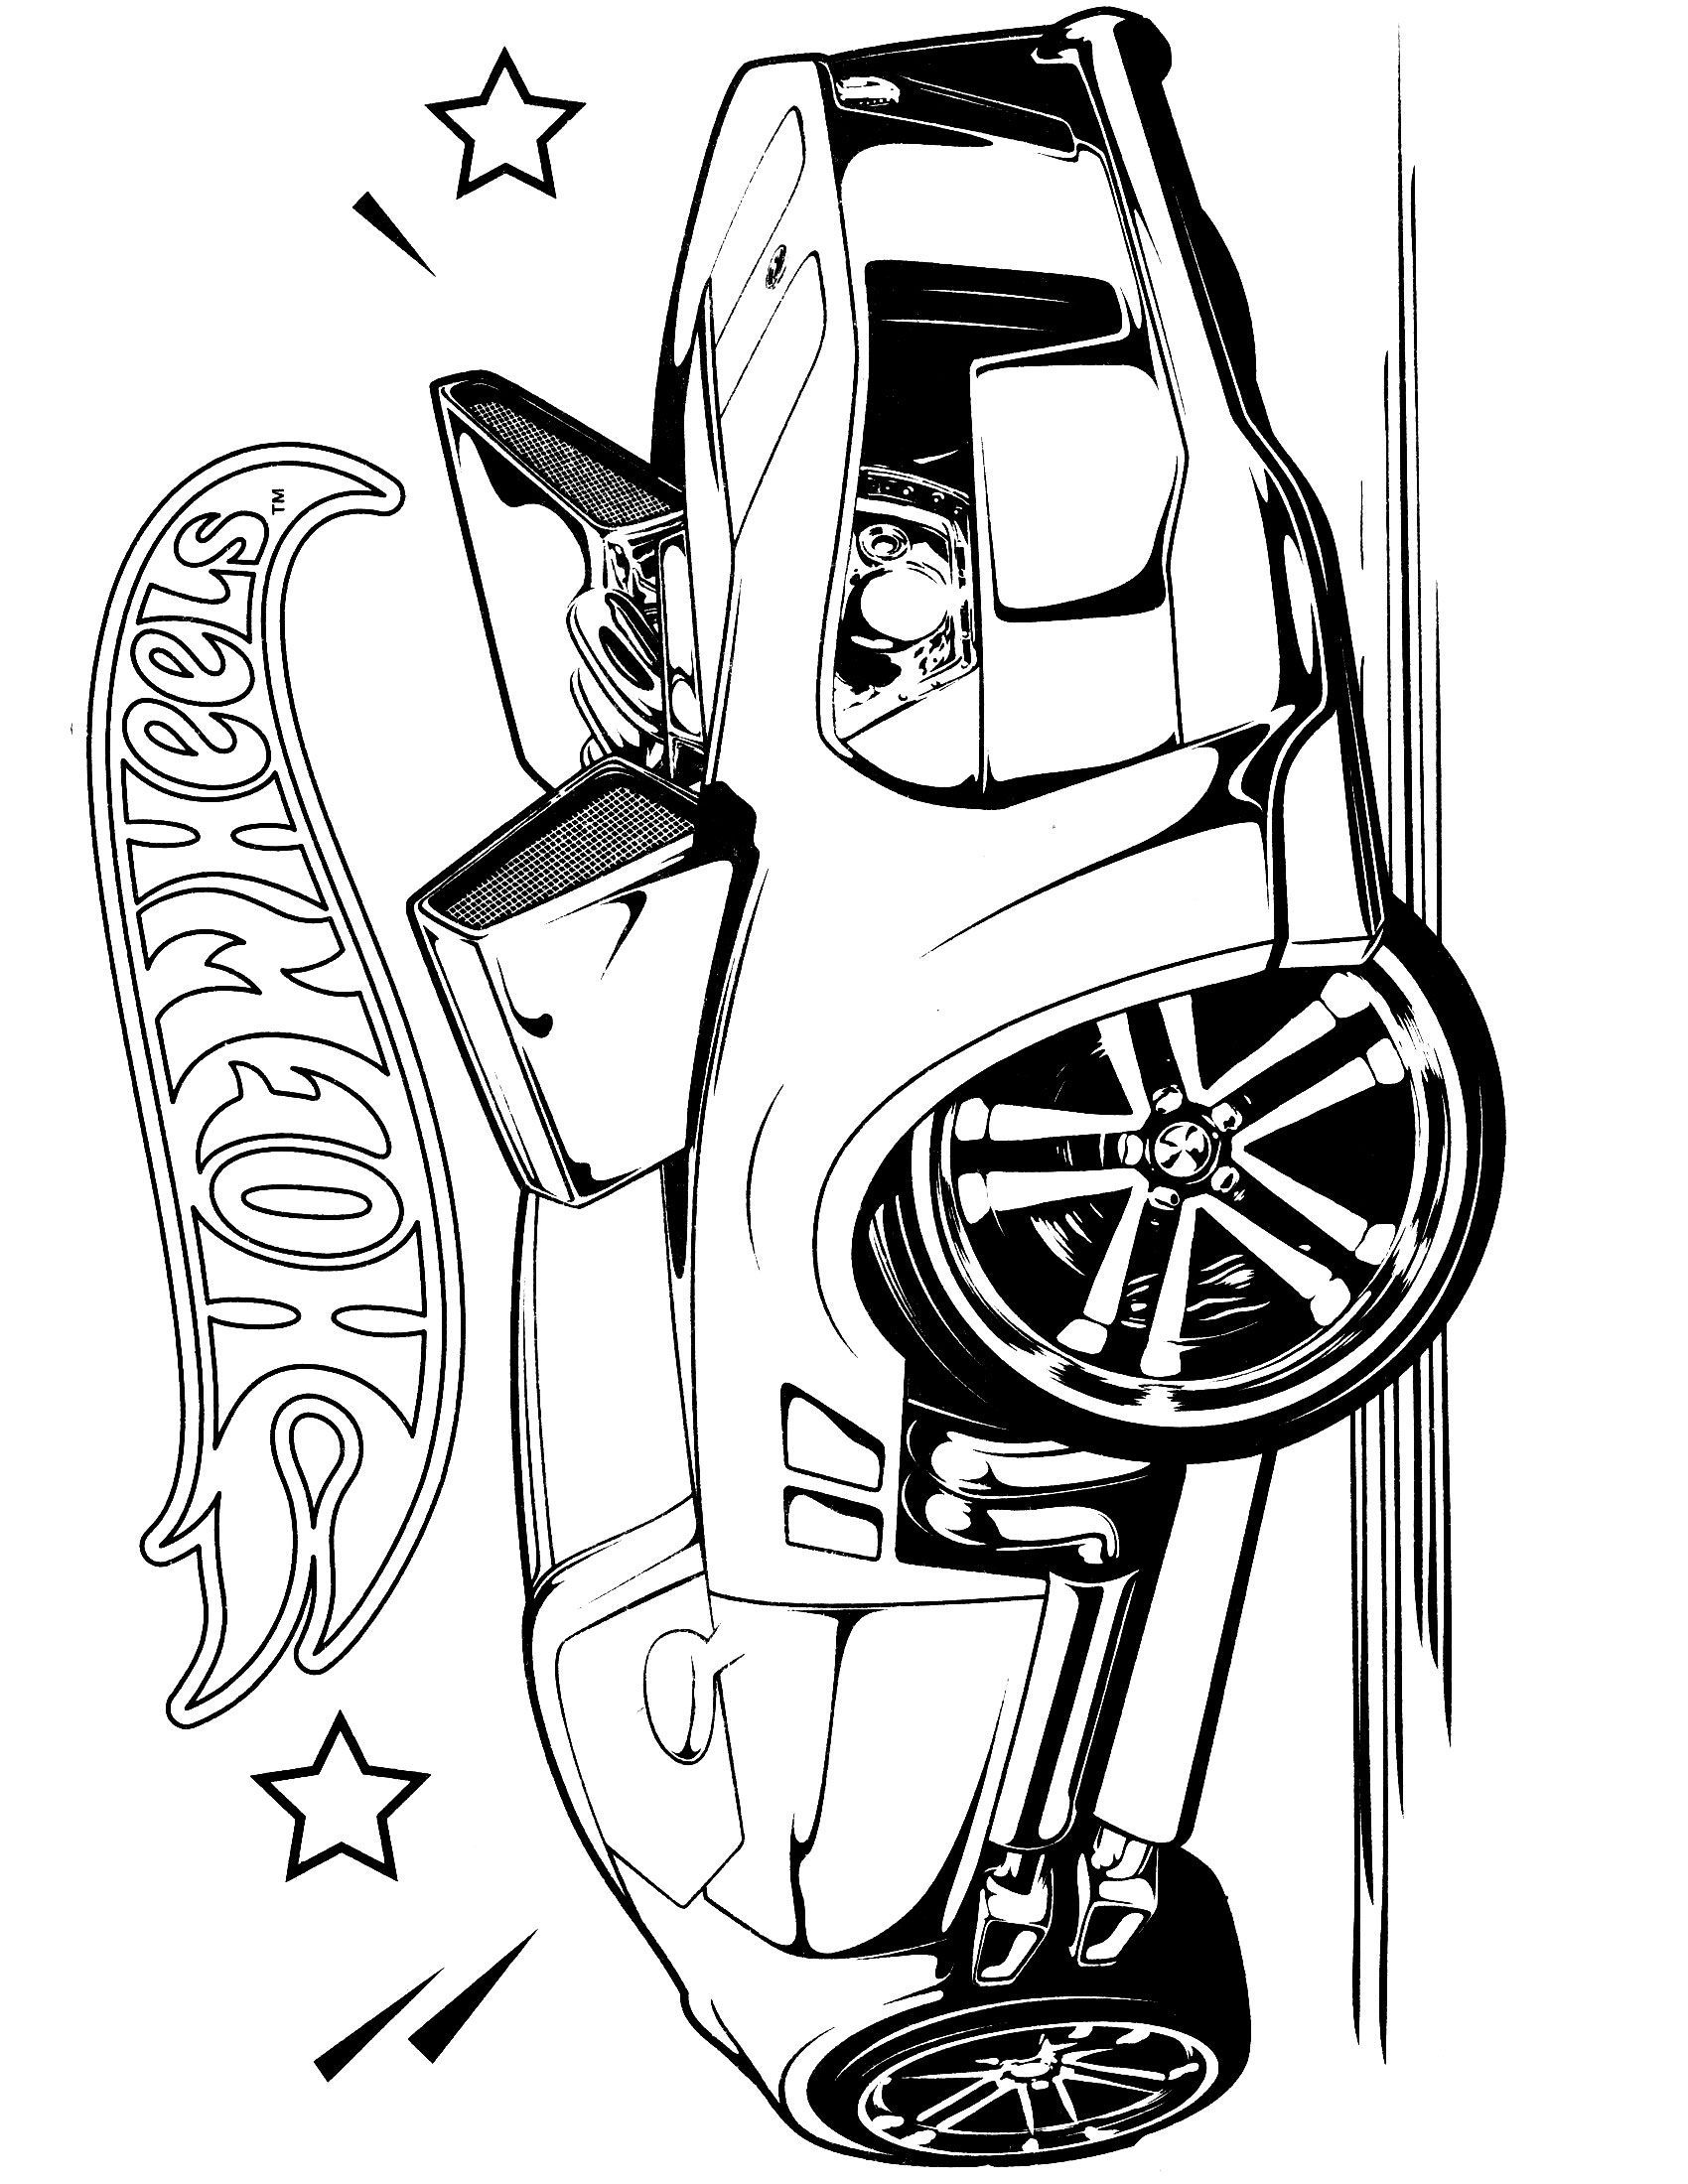 Team Hot Wheels Coloring Pages 1 Hotwheelsbedroomideas Cars Coloring Pages Hot Wheels Birthday Hot Wheels Party